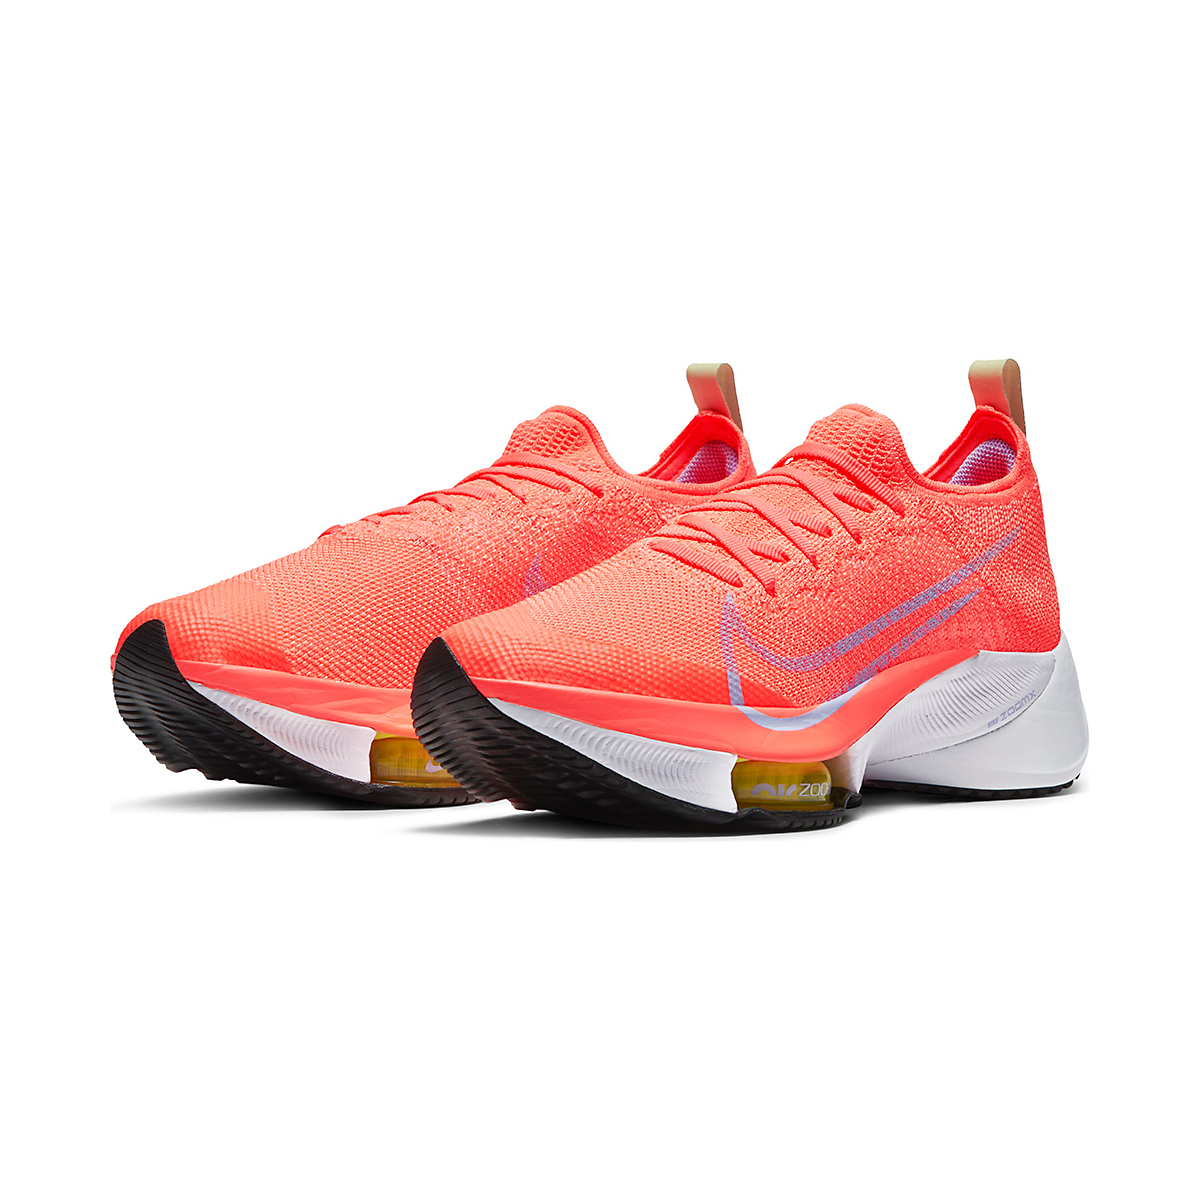 Women's Nike Air Zoom Tempo NEXT% Running Shoe - Color: Bright Mango/Purple Pulse-White - Size: 5.5 - Width: Regular, Bright Mango/Purple Pulse-White, large, image 4